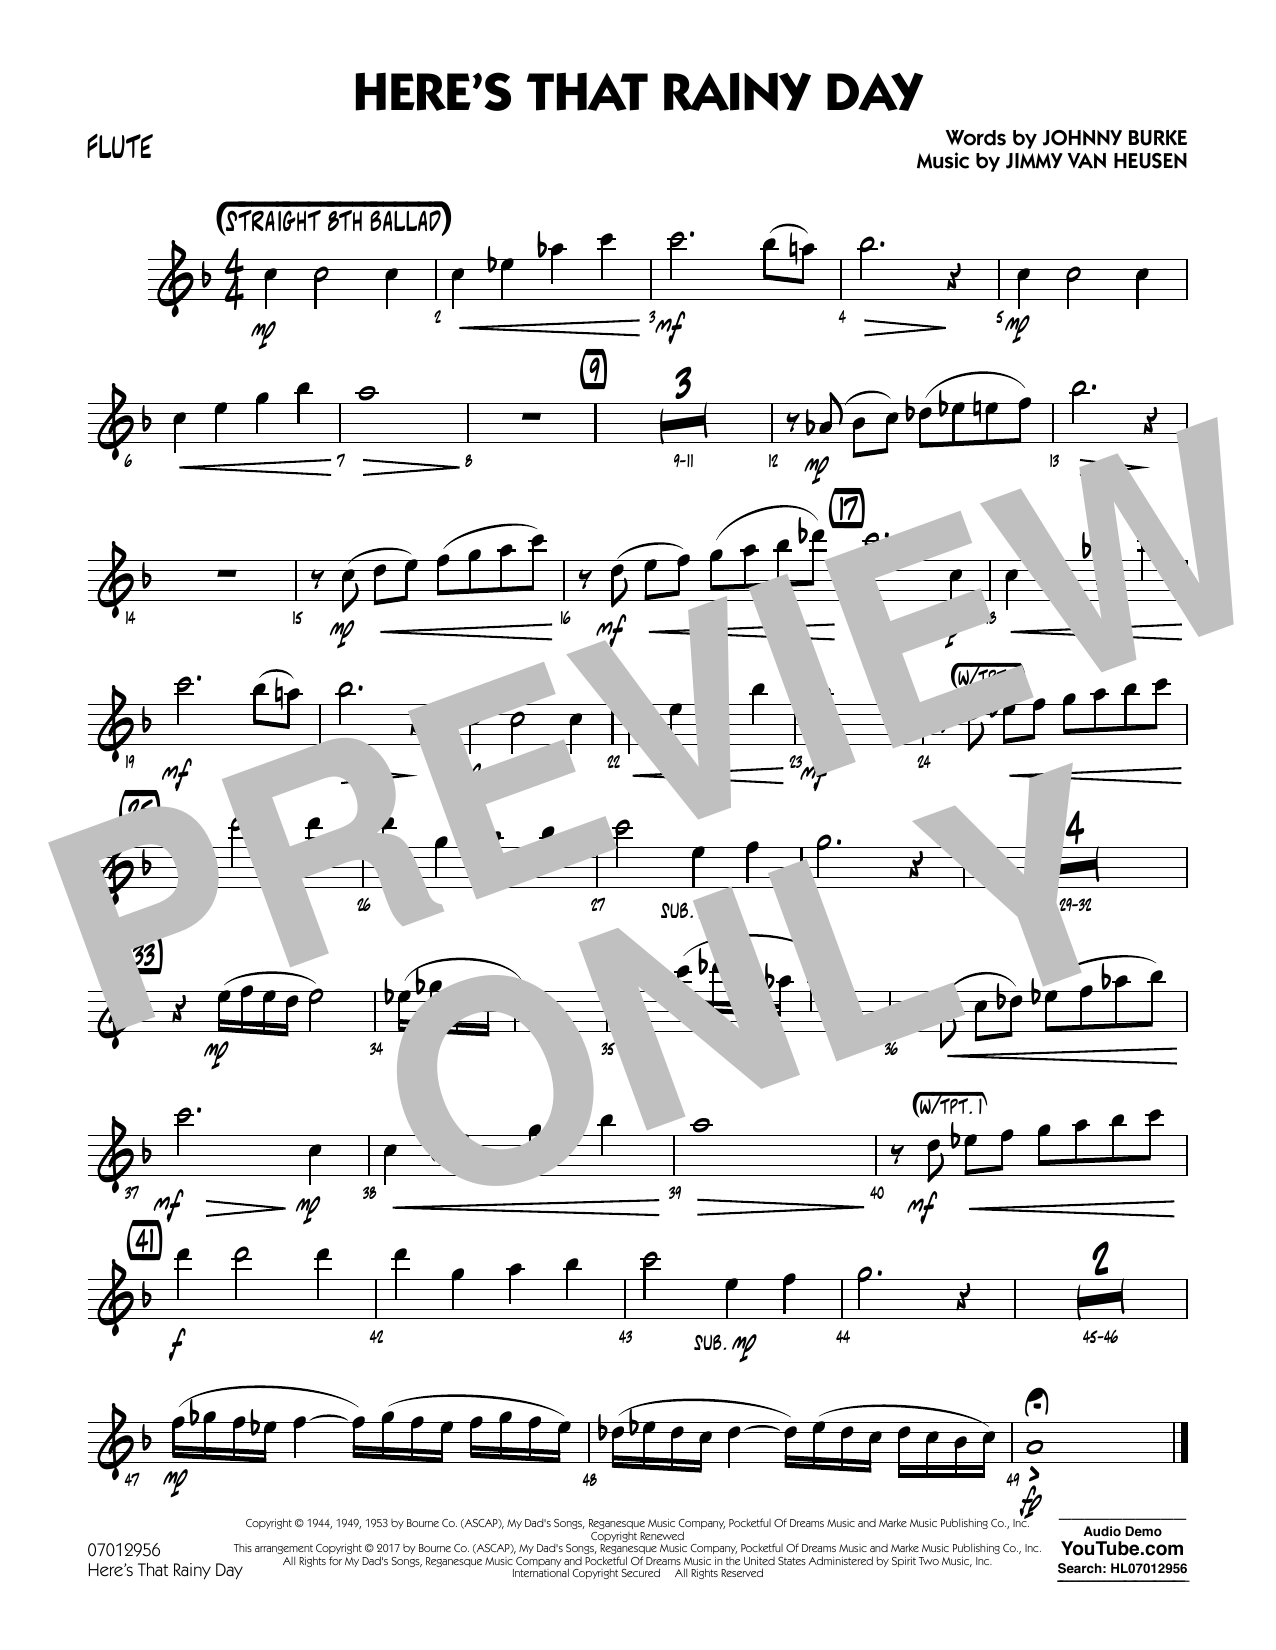 Rick Stitzel Here's That Rainy Day - Flute sheet music notes and chords. Download Printable PDF.